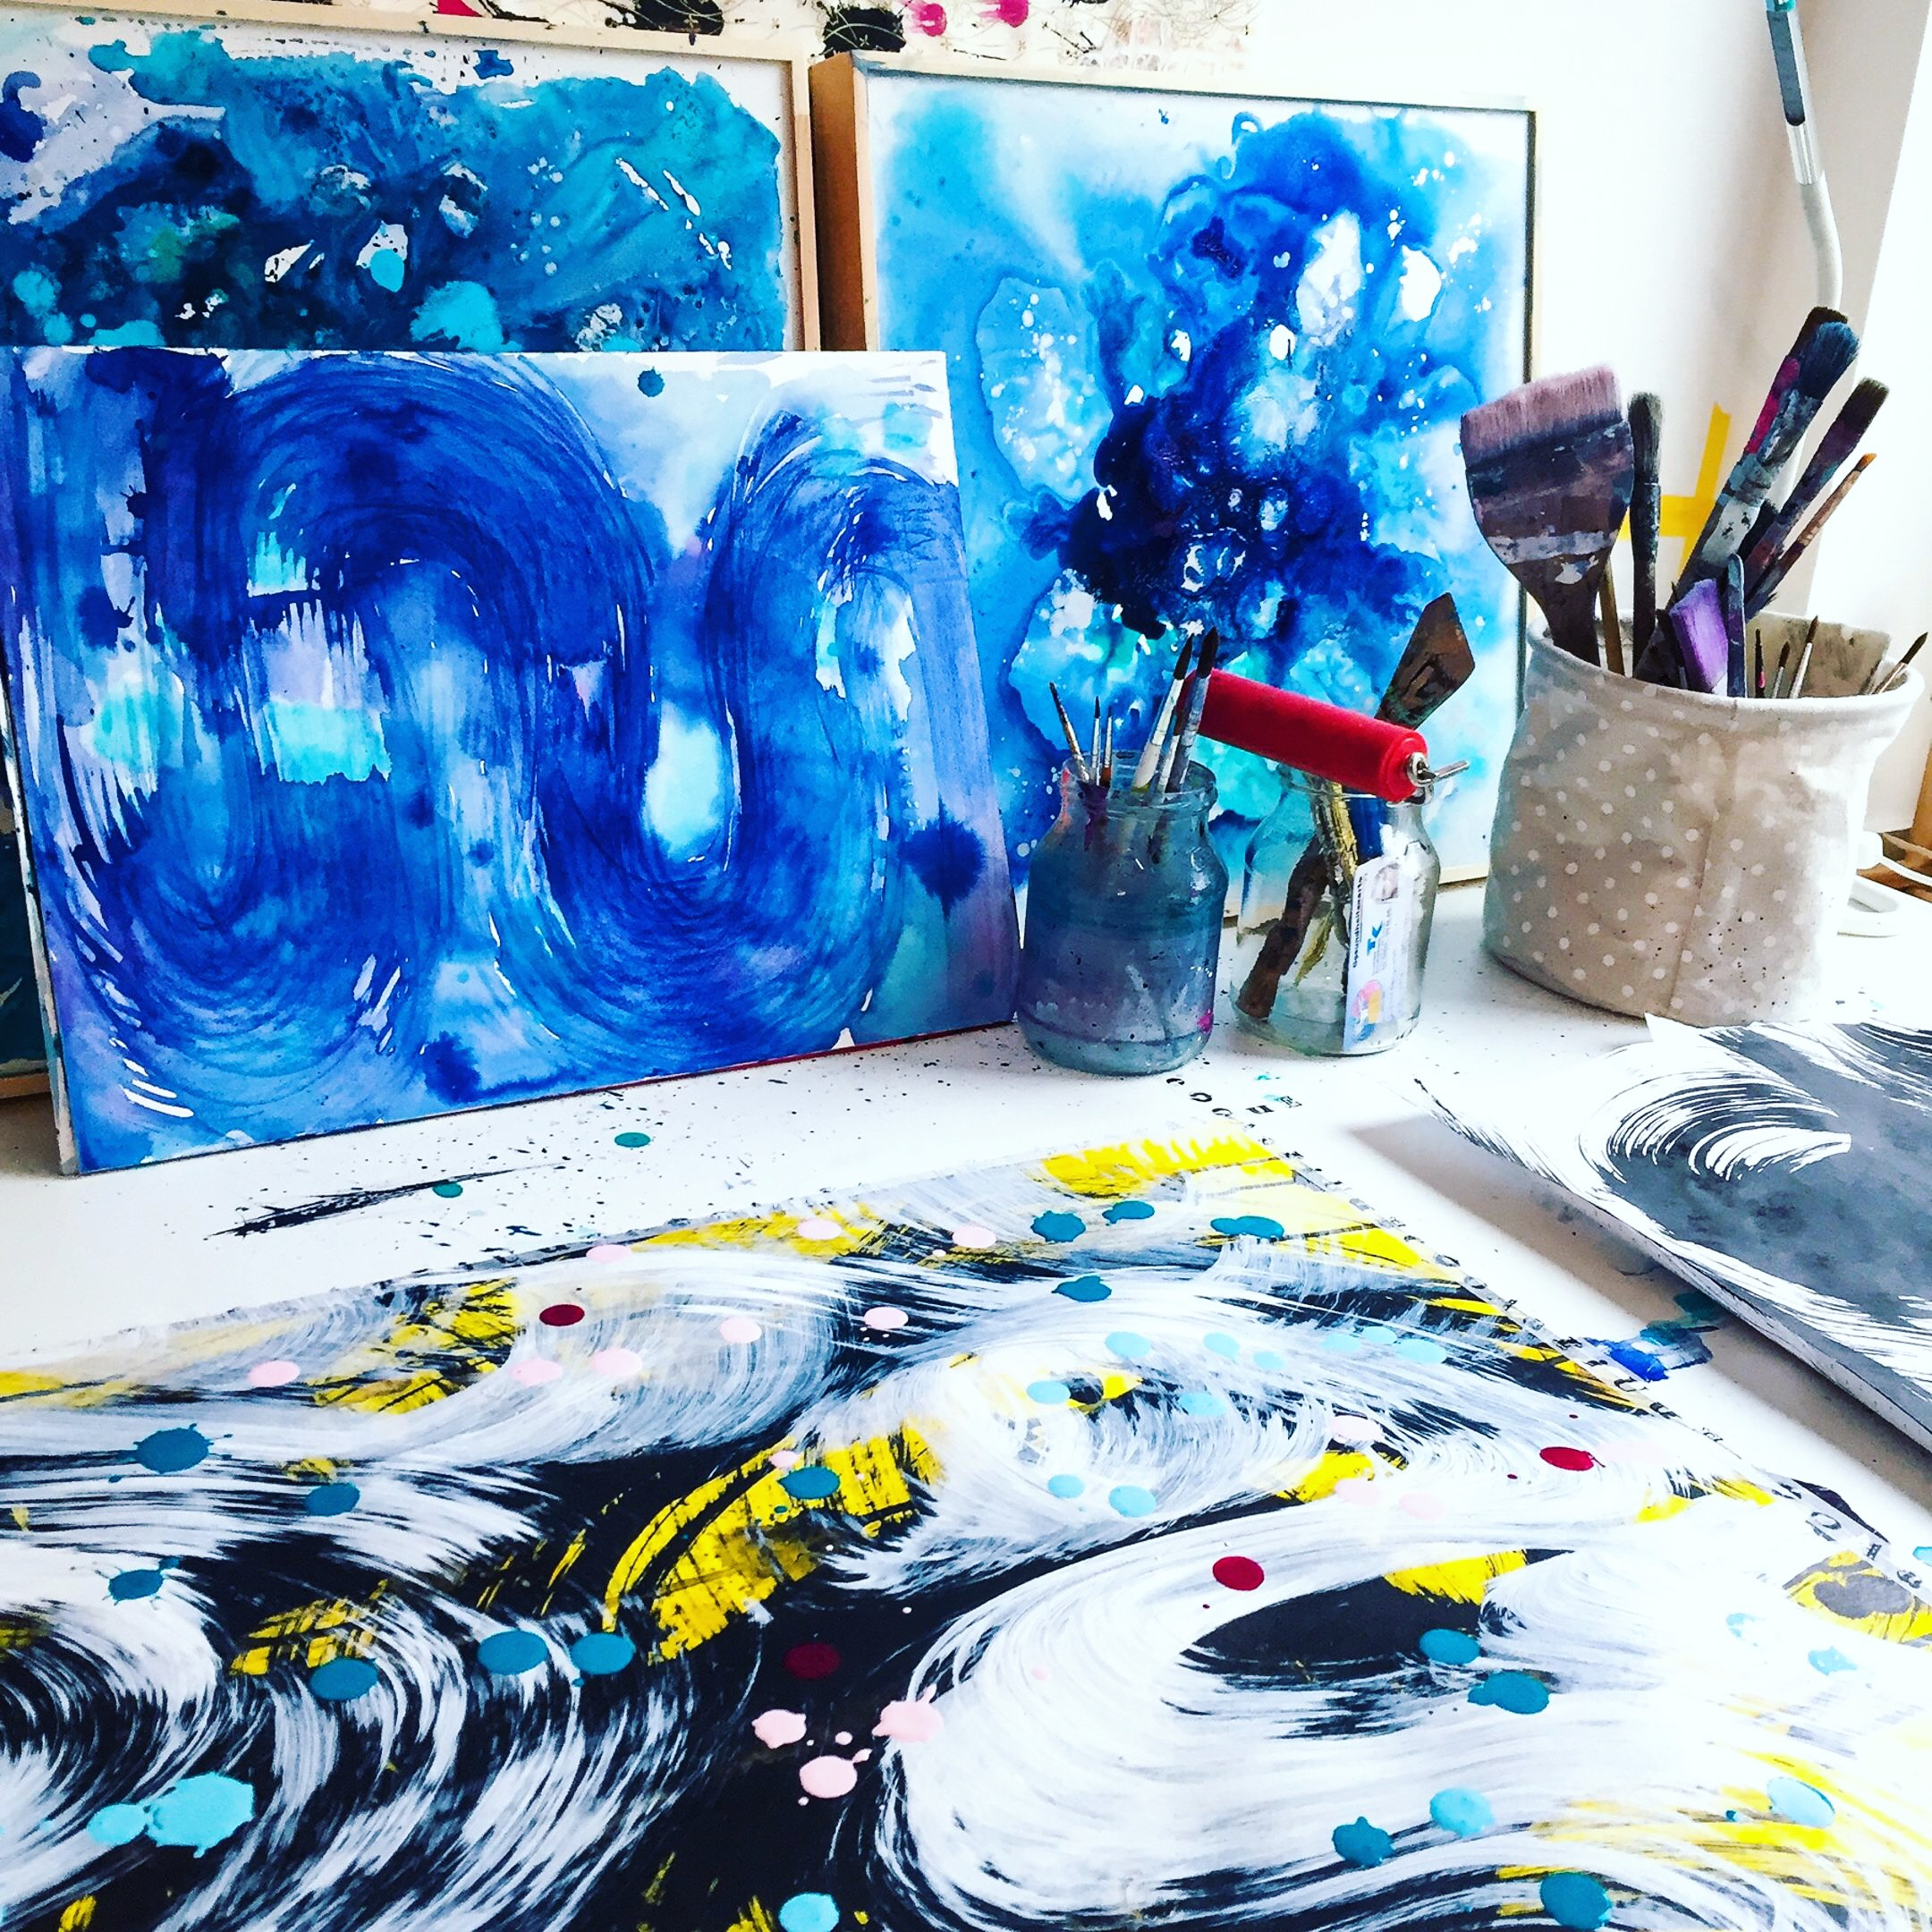 Love how full my studio space gets during an art-making challenge